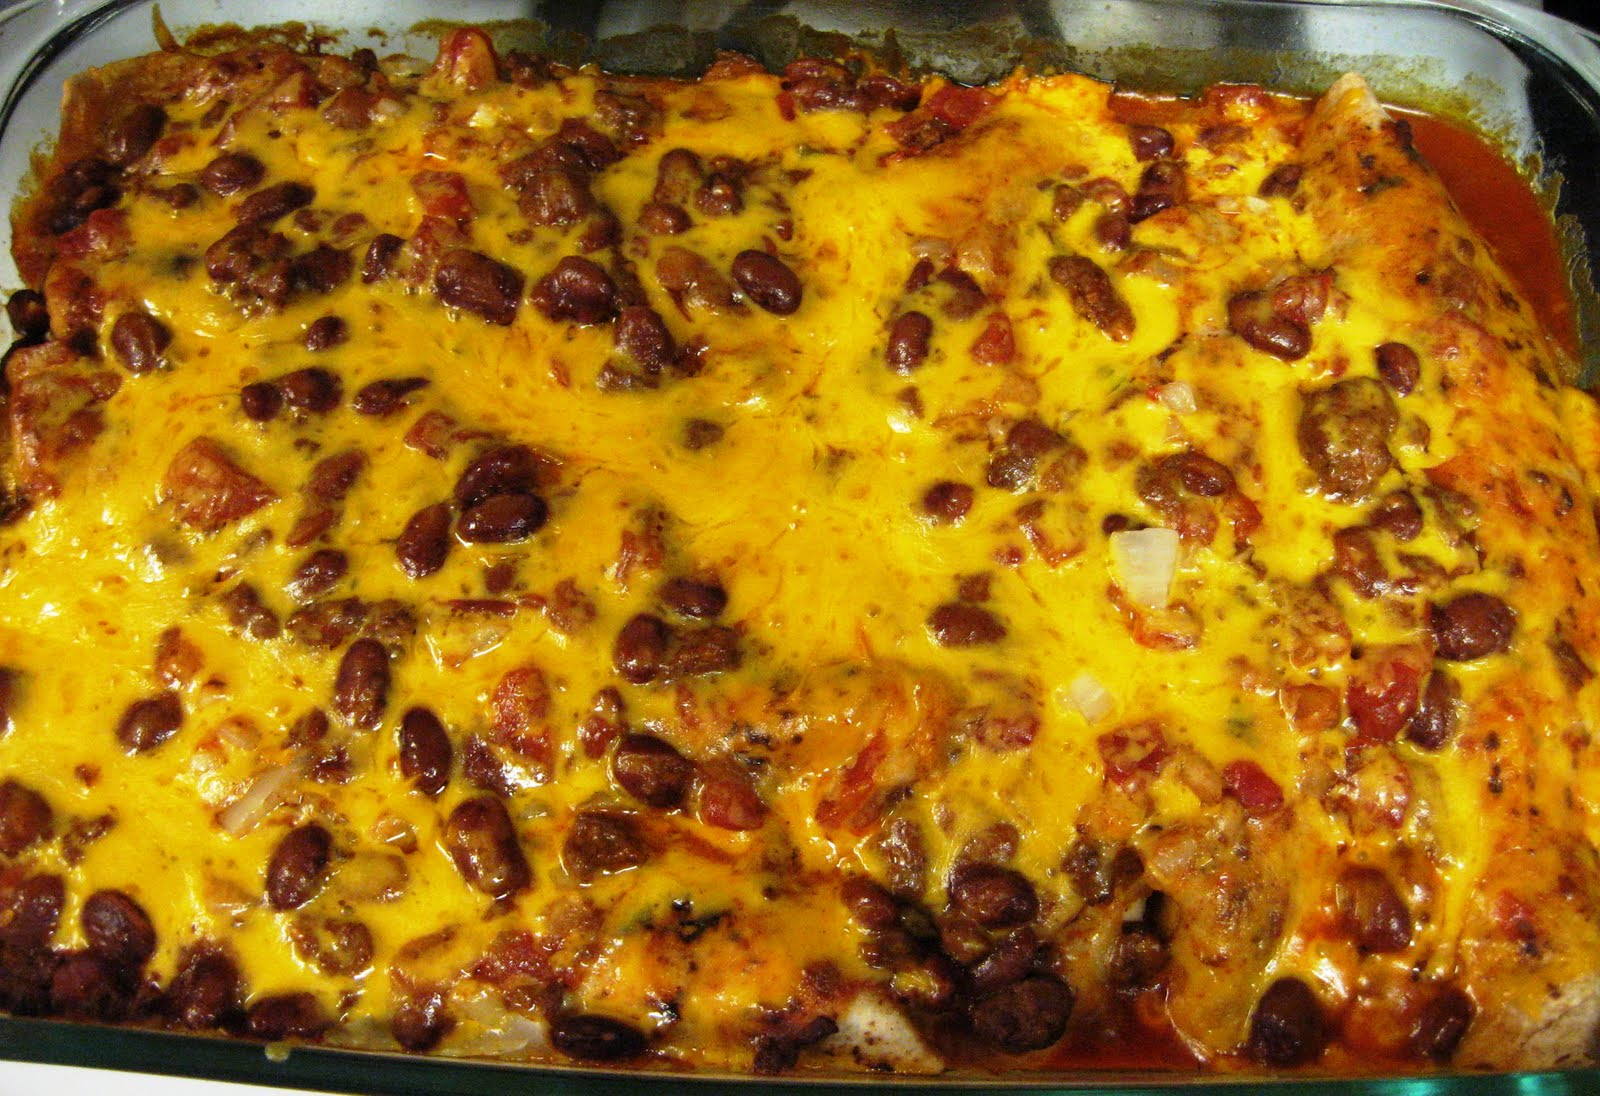 Debbi Does Dinner... Healthy & Low Calorie: Chili Dog Casserole